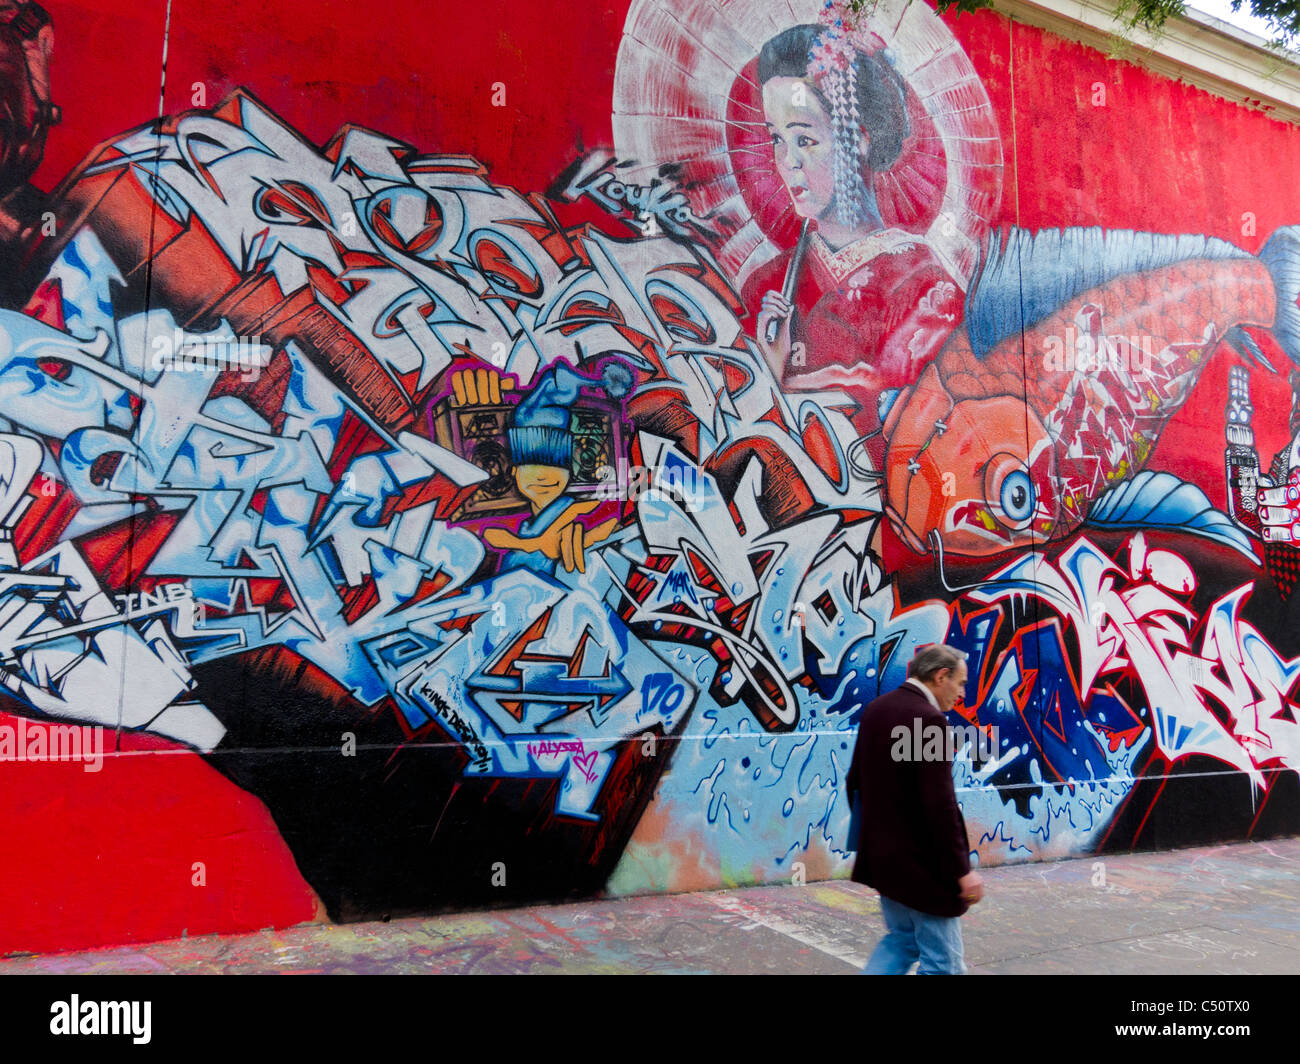 Paris, France, Graffiti Art, Public, Painting Wall, Japanese Theme, Street Scene - Stock Image